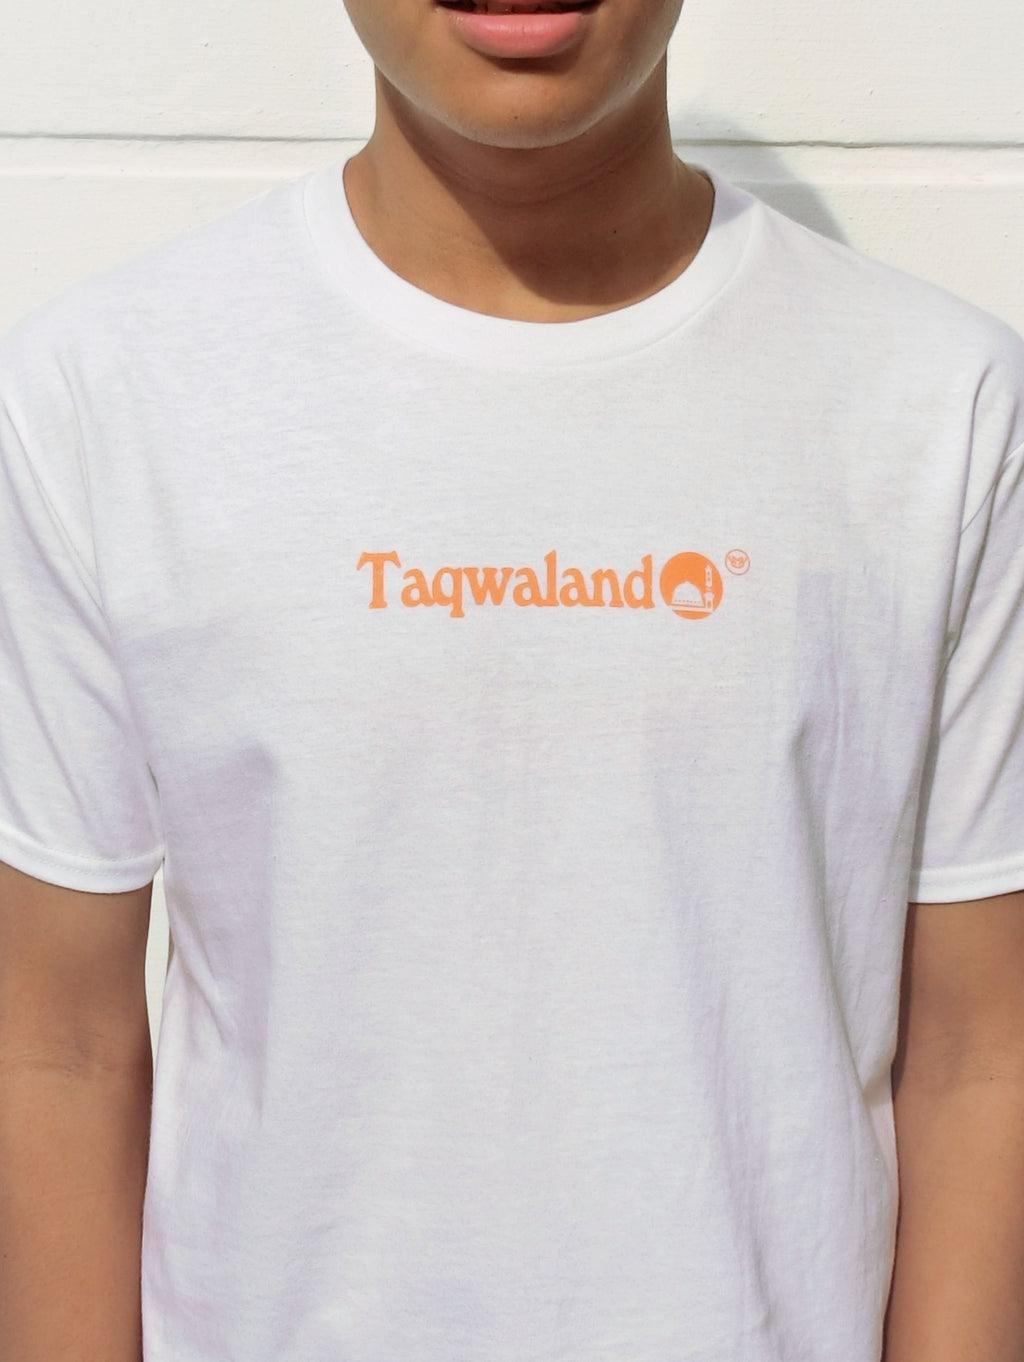 Tshirt - Taqwaland in White